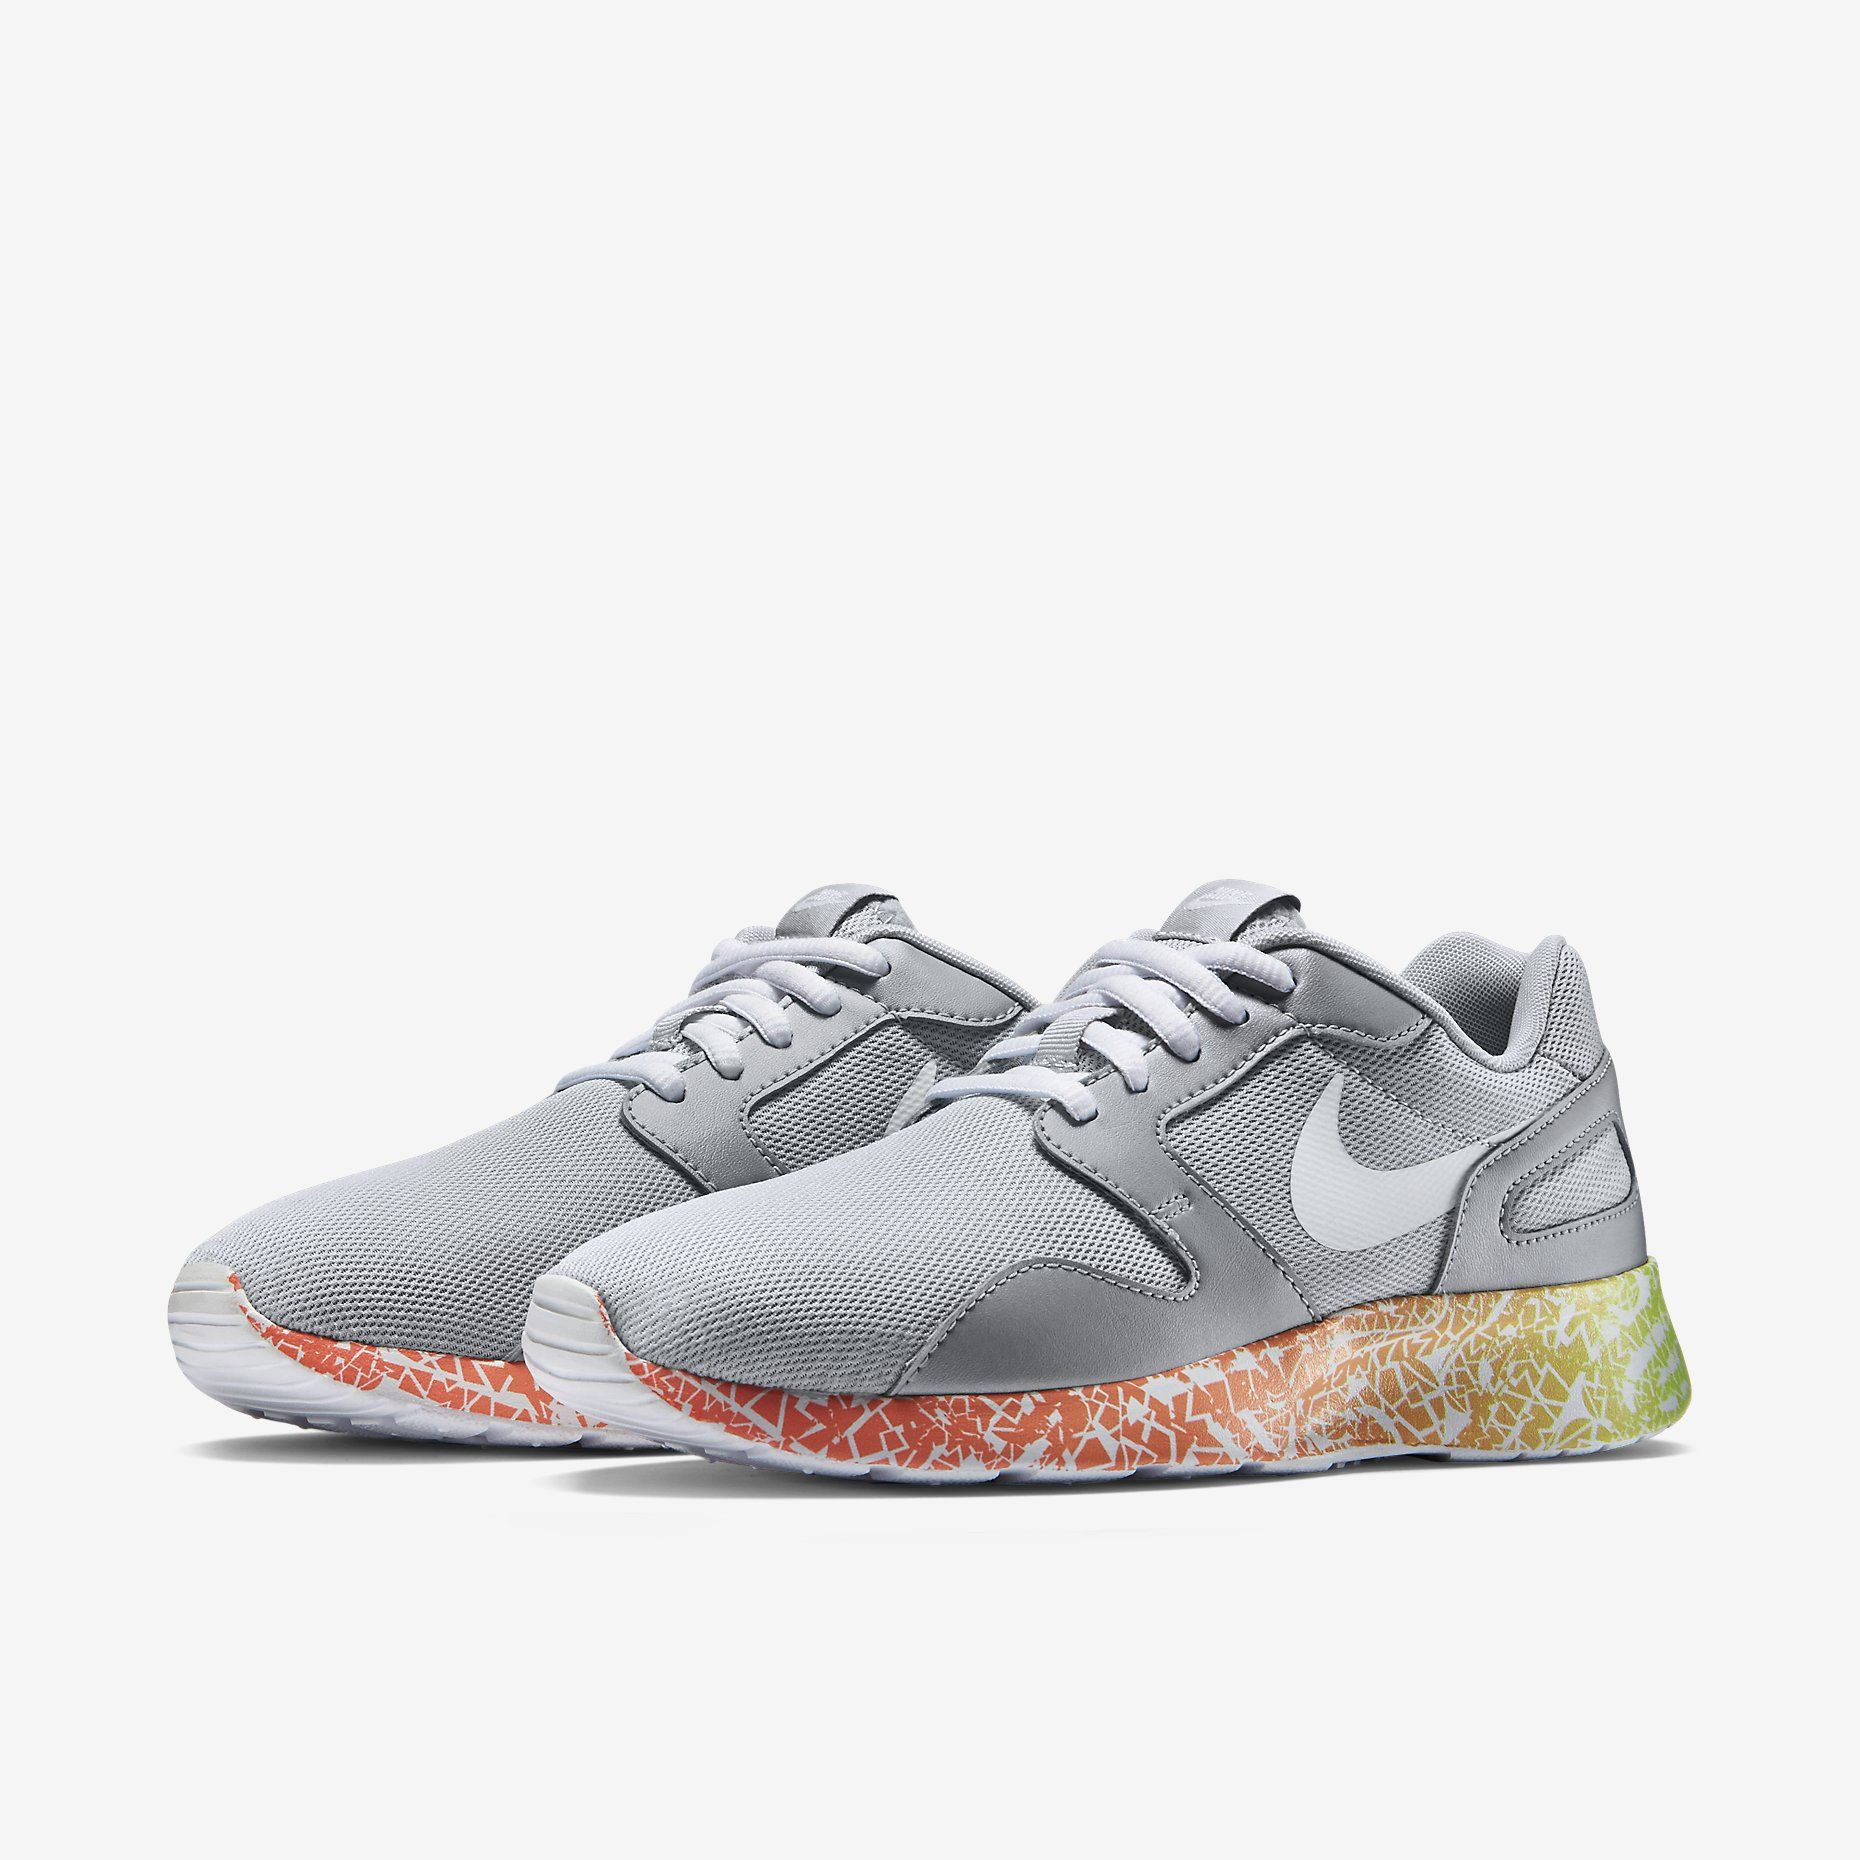 lowest price 2f3be 3aef7 Nike Kaishi Run Print Women s Shoe. Nike Store PT